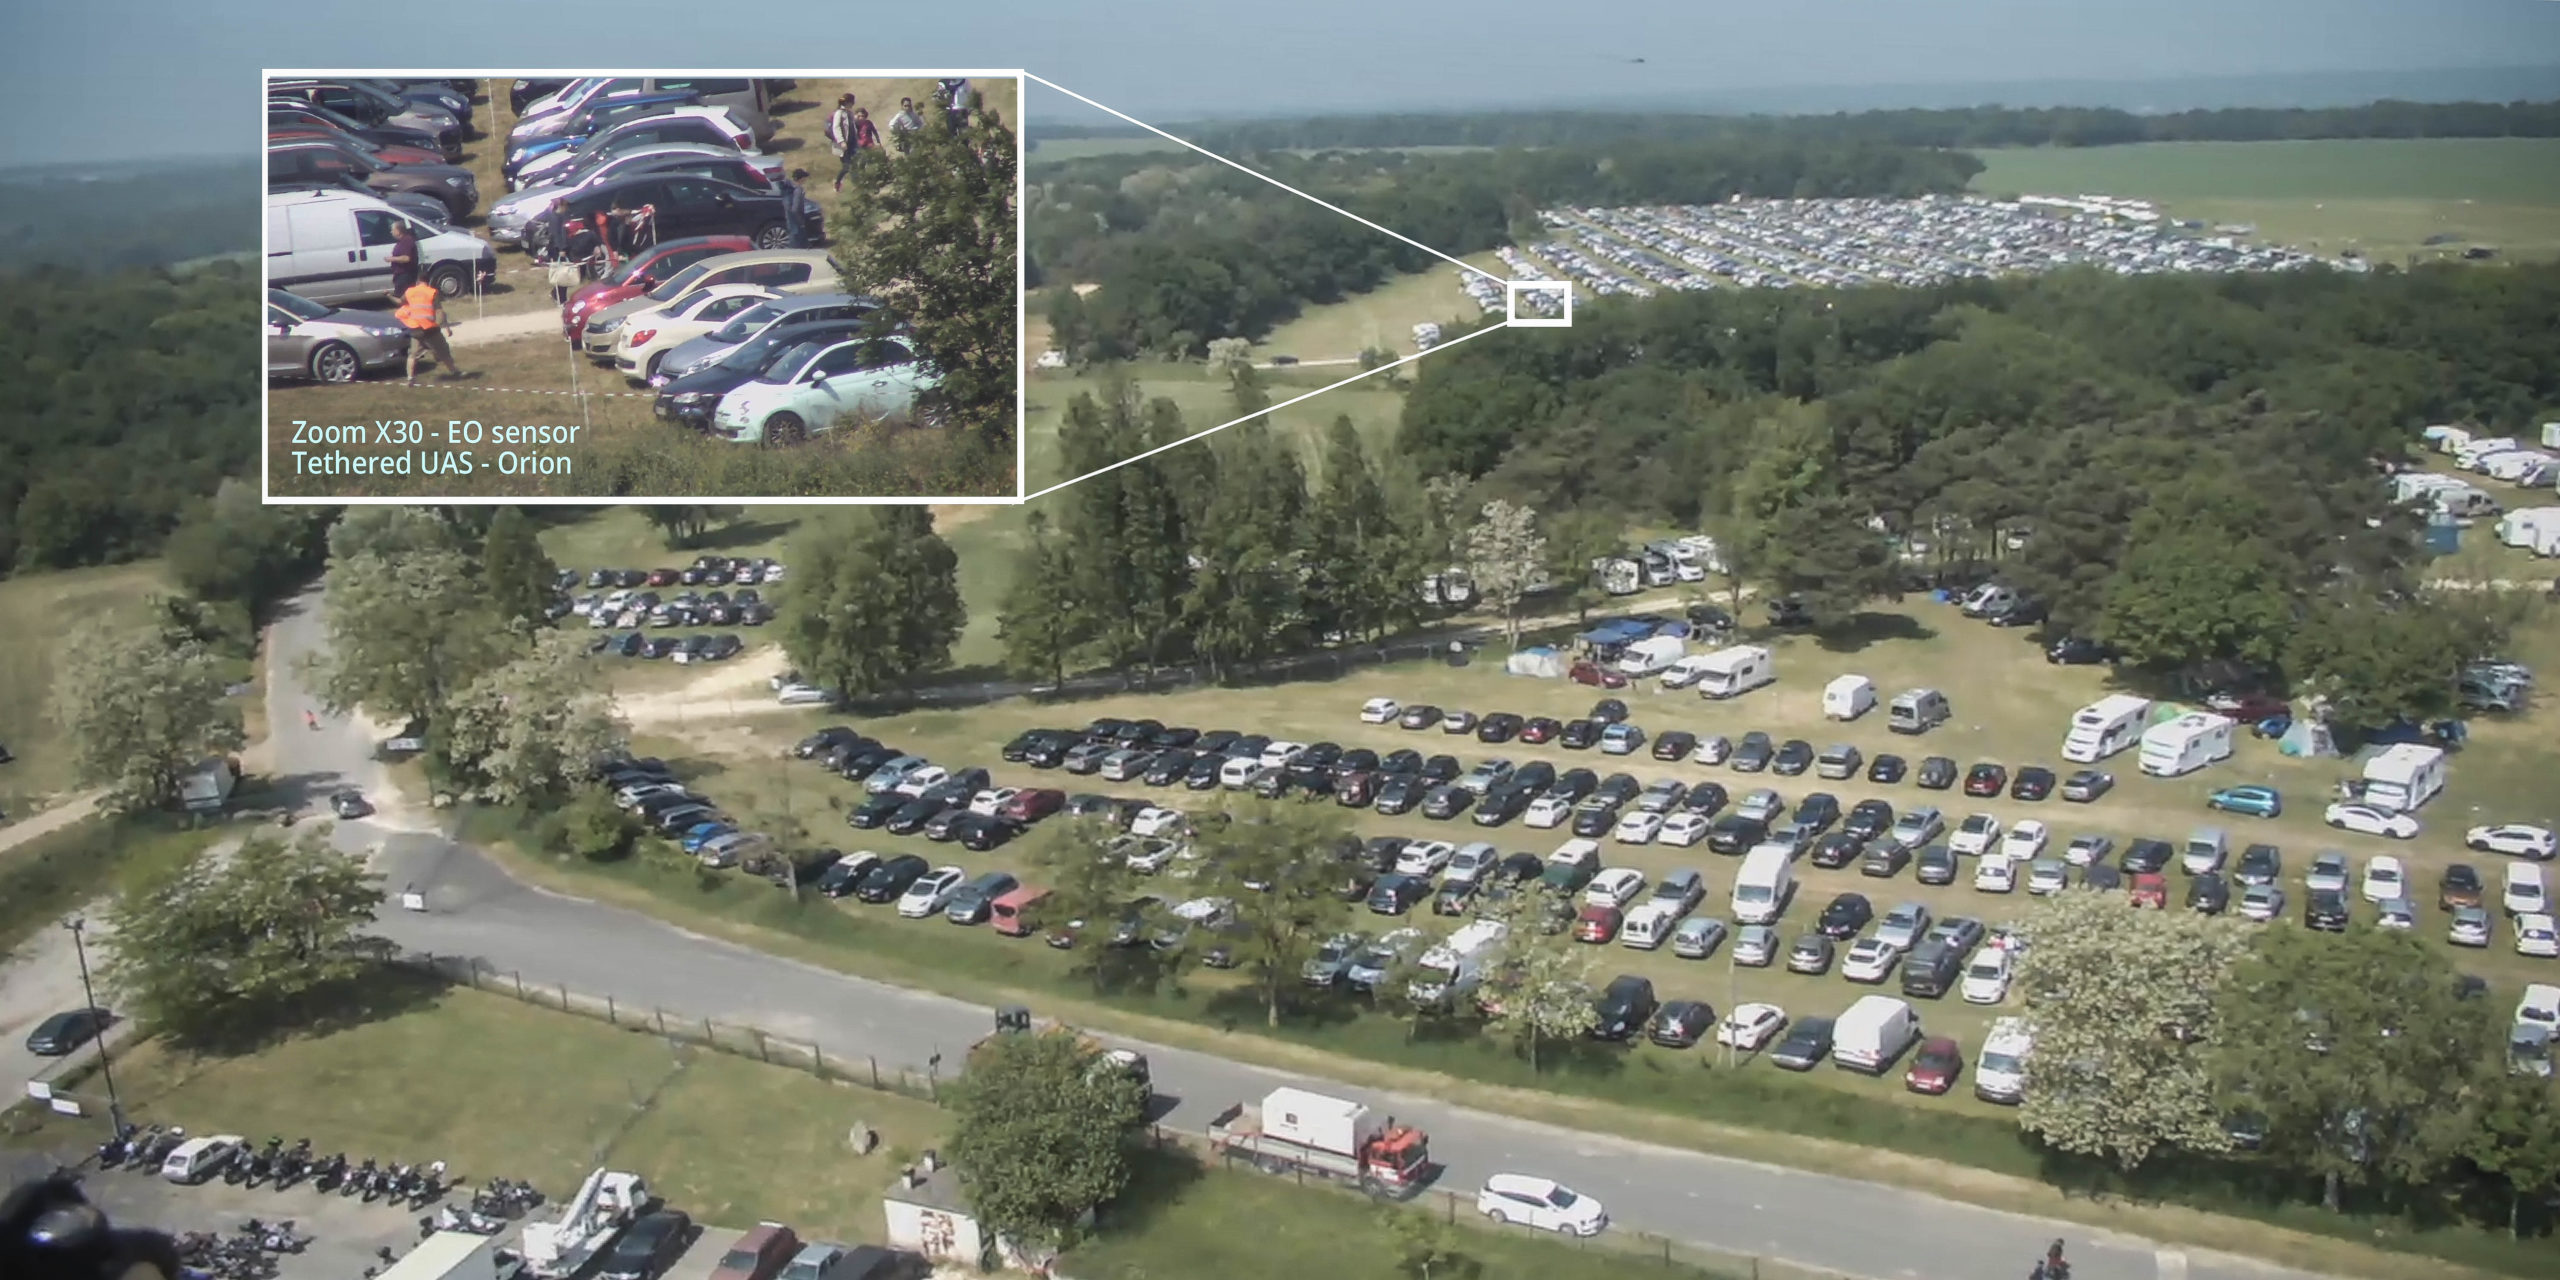 Elistair tethered drone for France 2nd largest air show, for flow management.